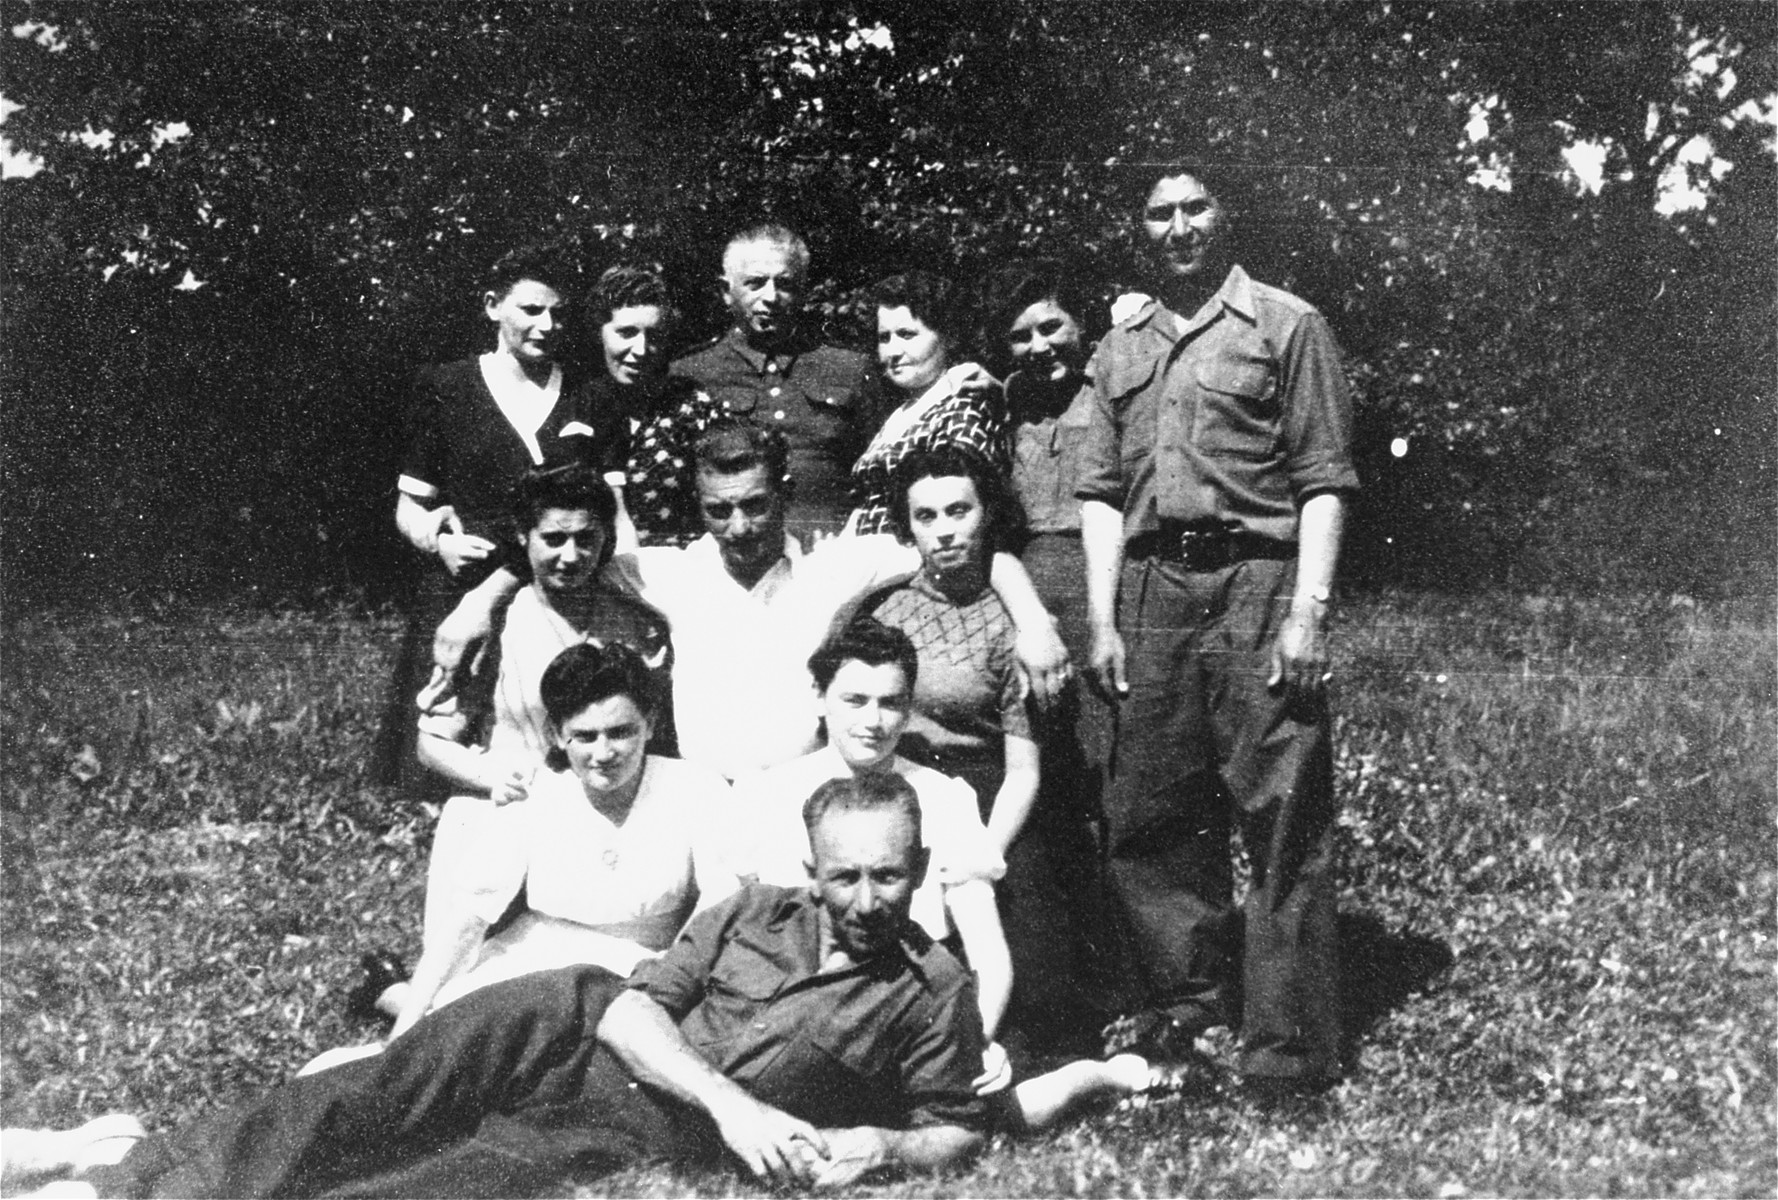 Group portrait of UNRRA workers and DPs at the Stuttgart displaced persons camp.